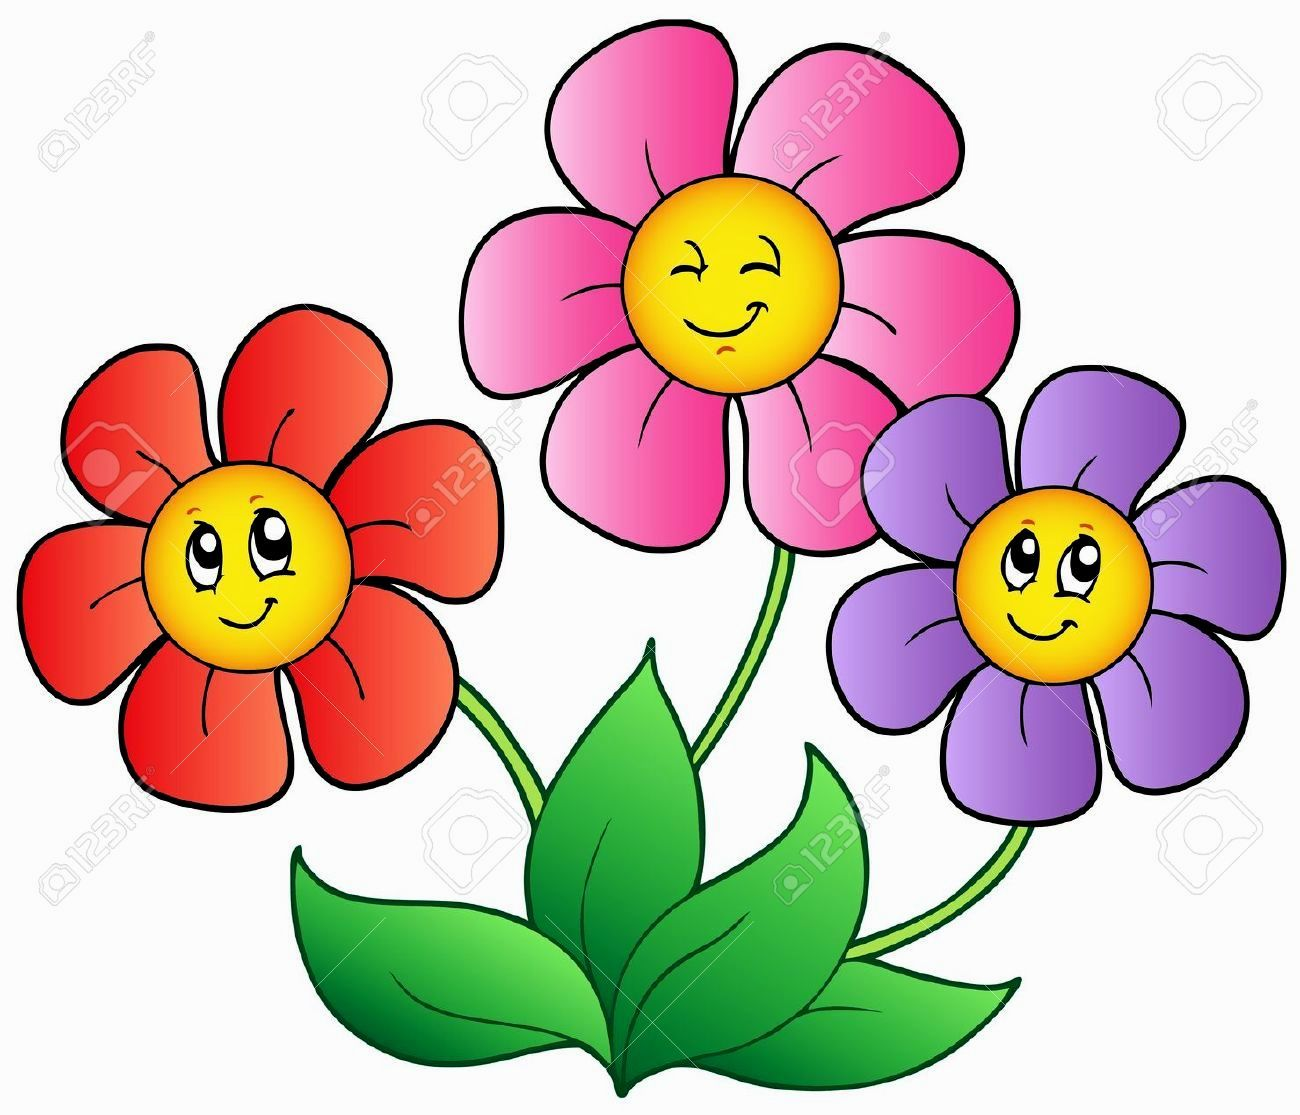 Pictures of flowers visit. Flower clipart cartoon